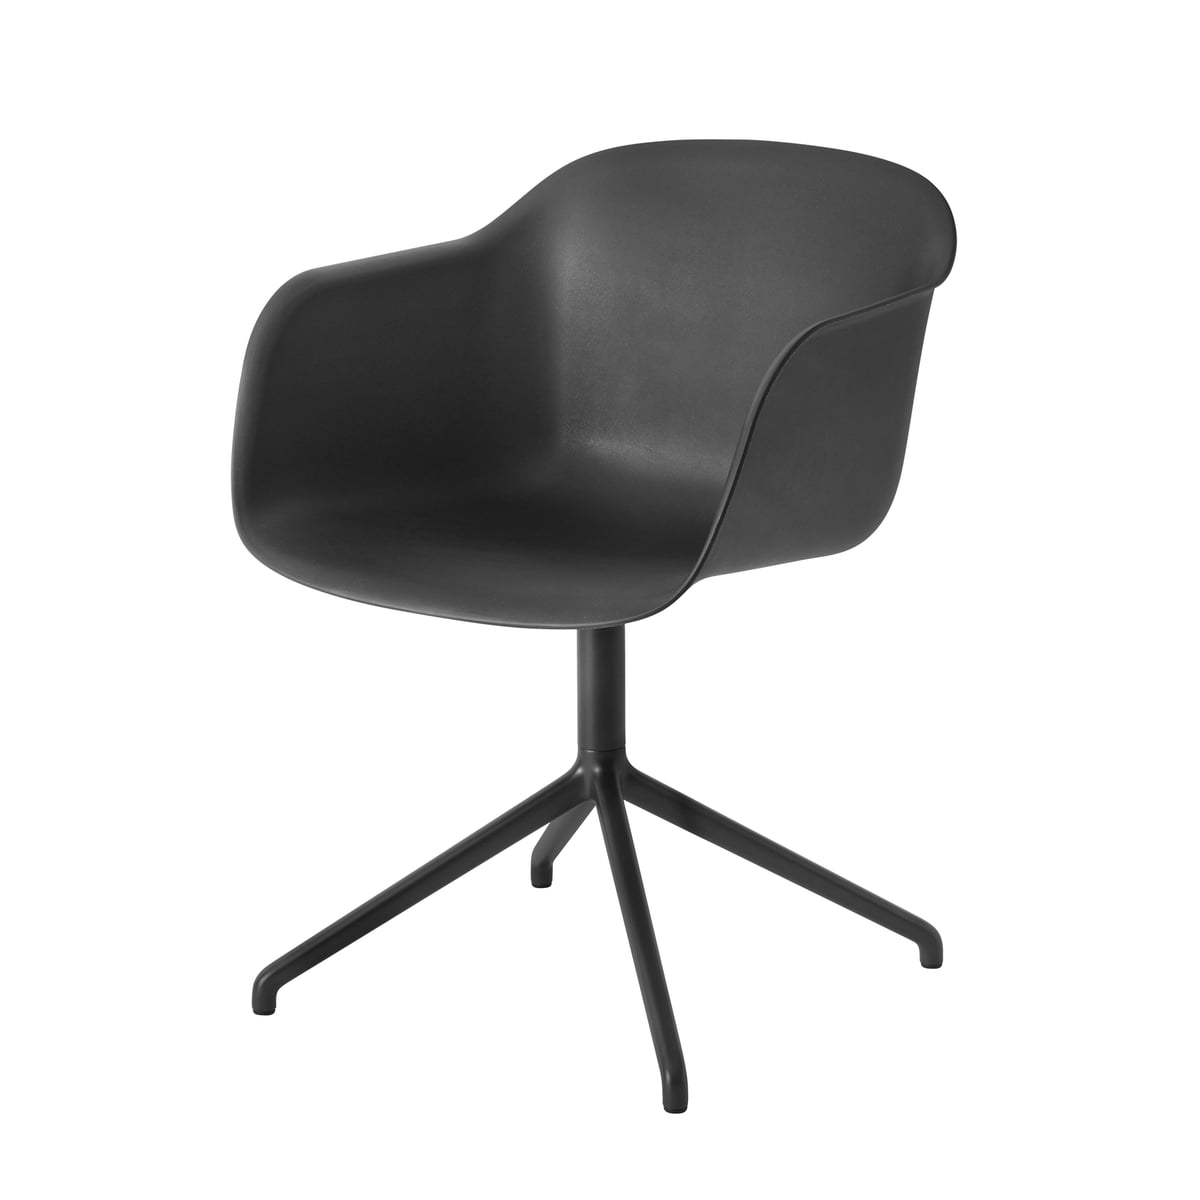 fiber chair swivel base von muuto connox. Black Bedroom Furniture Sets. Home Design Ideas